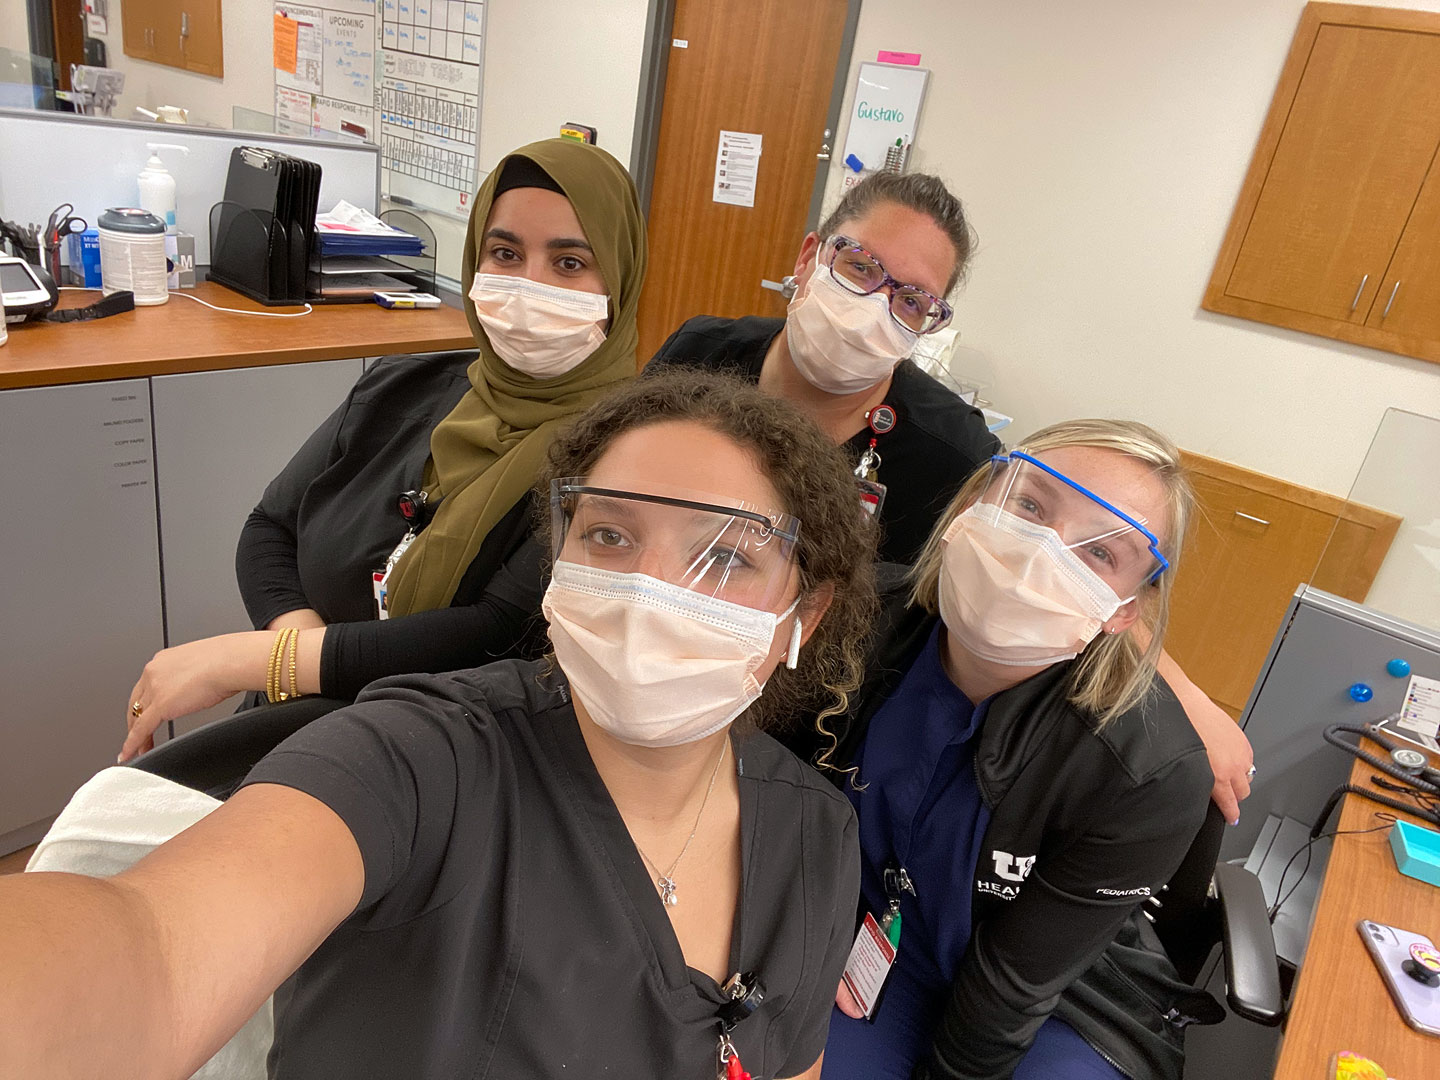 U. pediatric team wearing face coverings